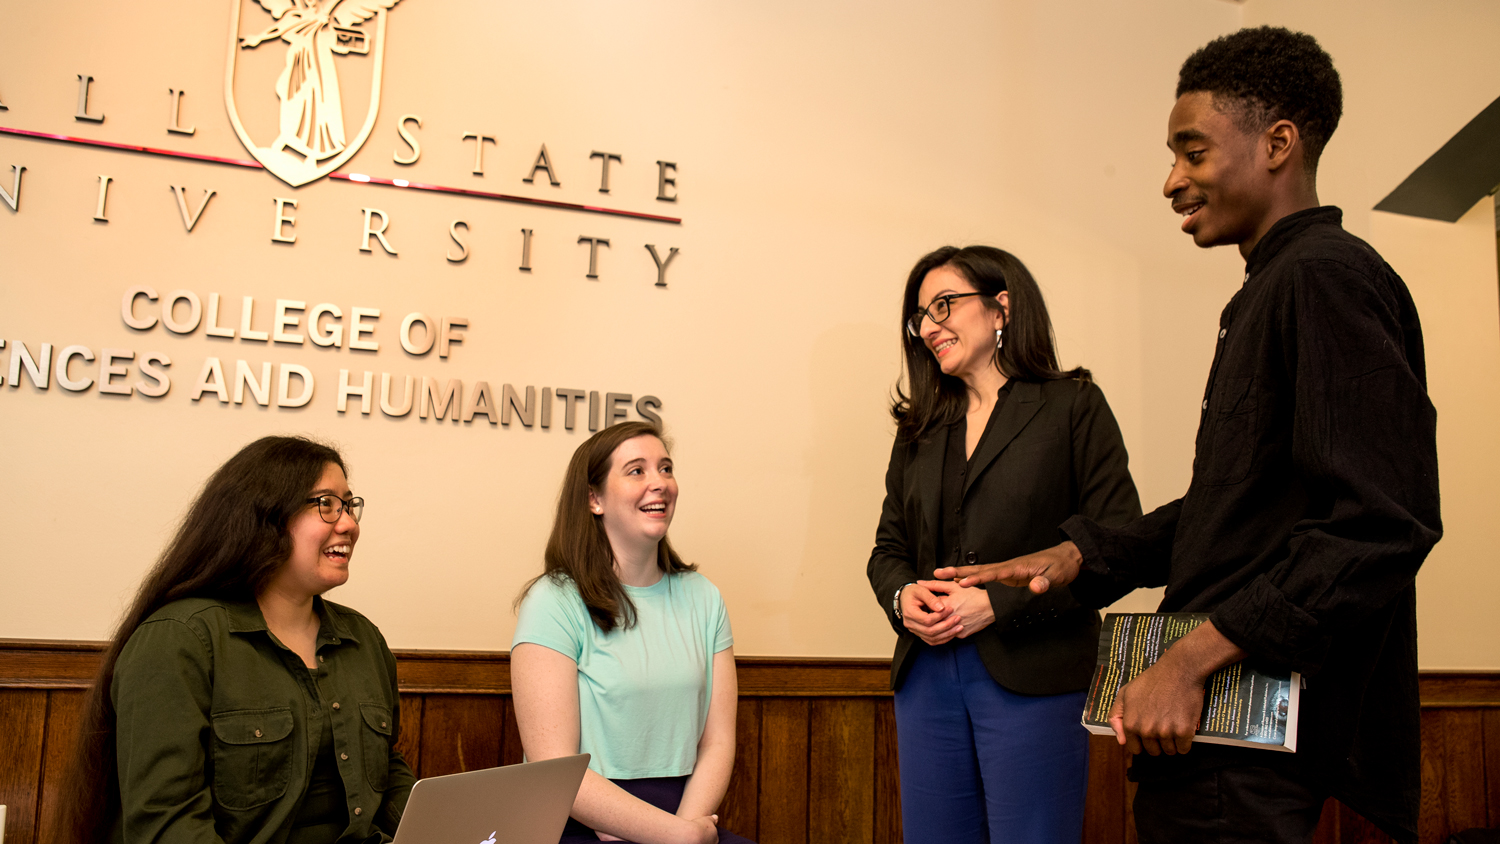 alum Janet Arias speaks with students outside the Dean's office